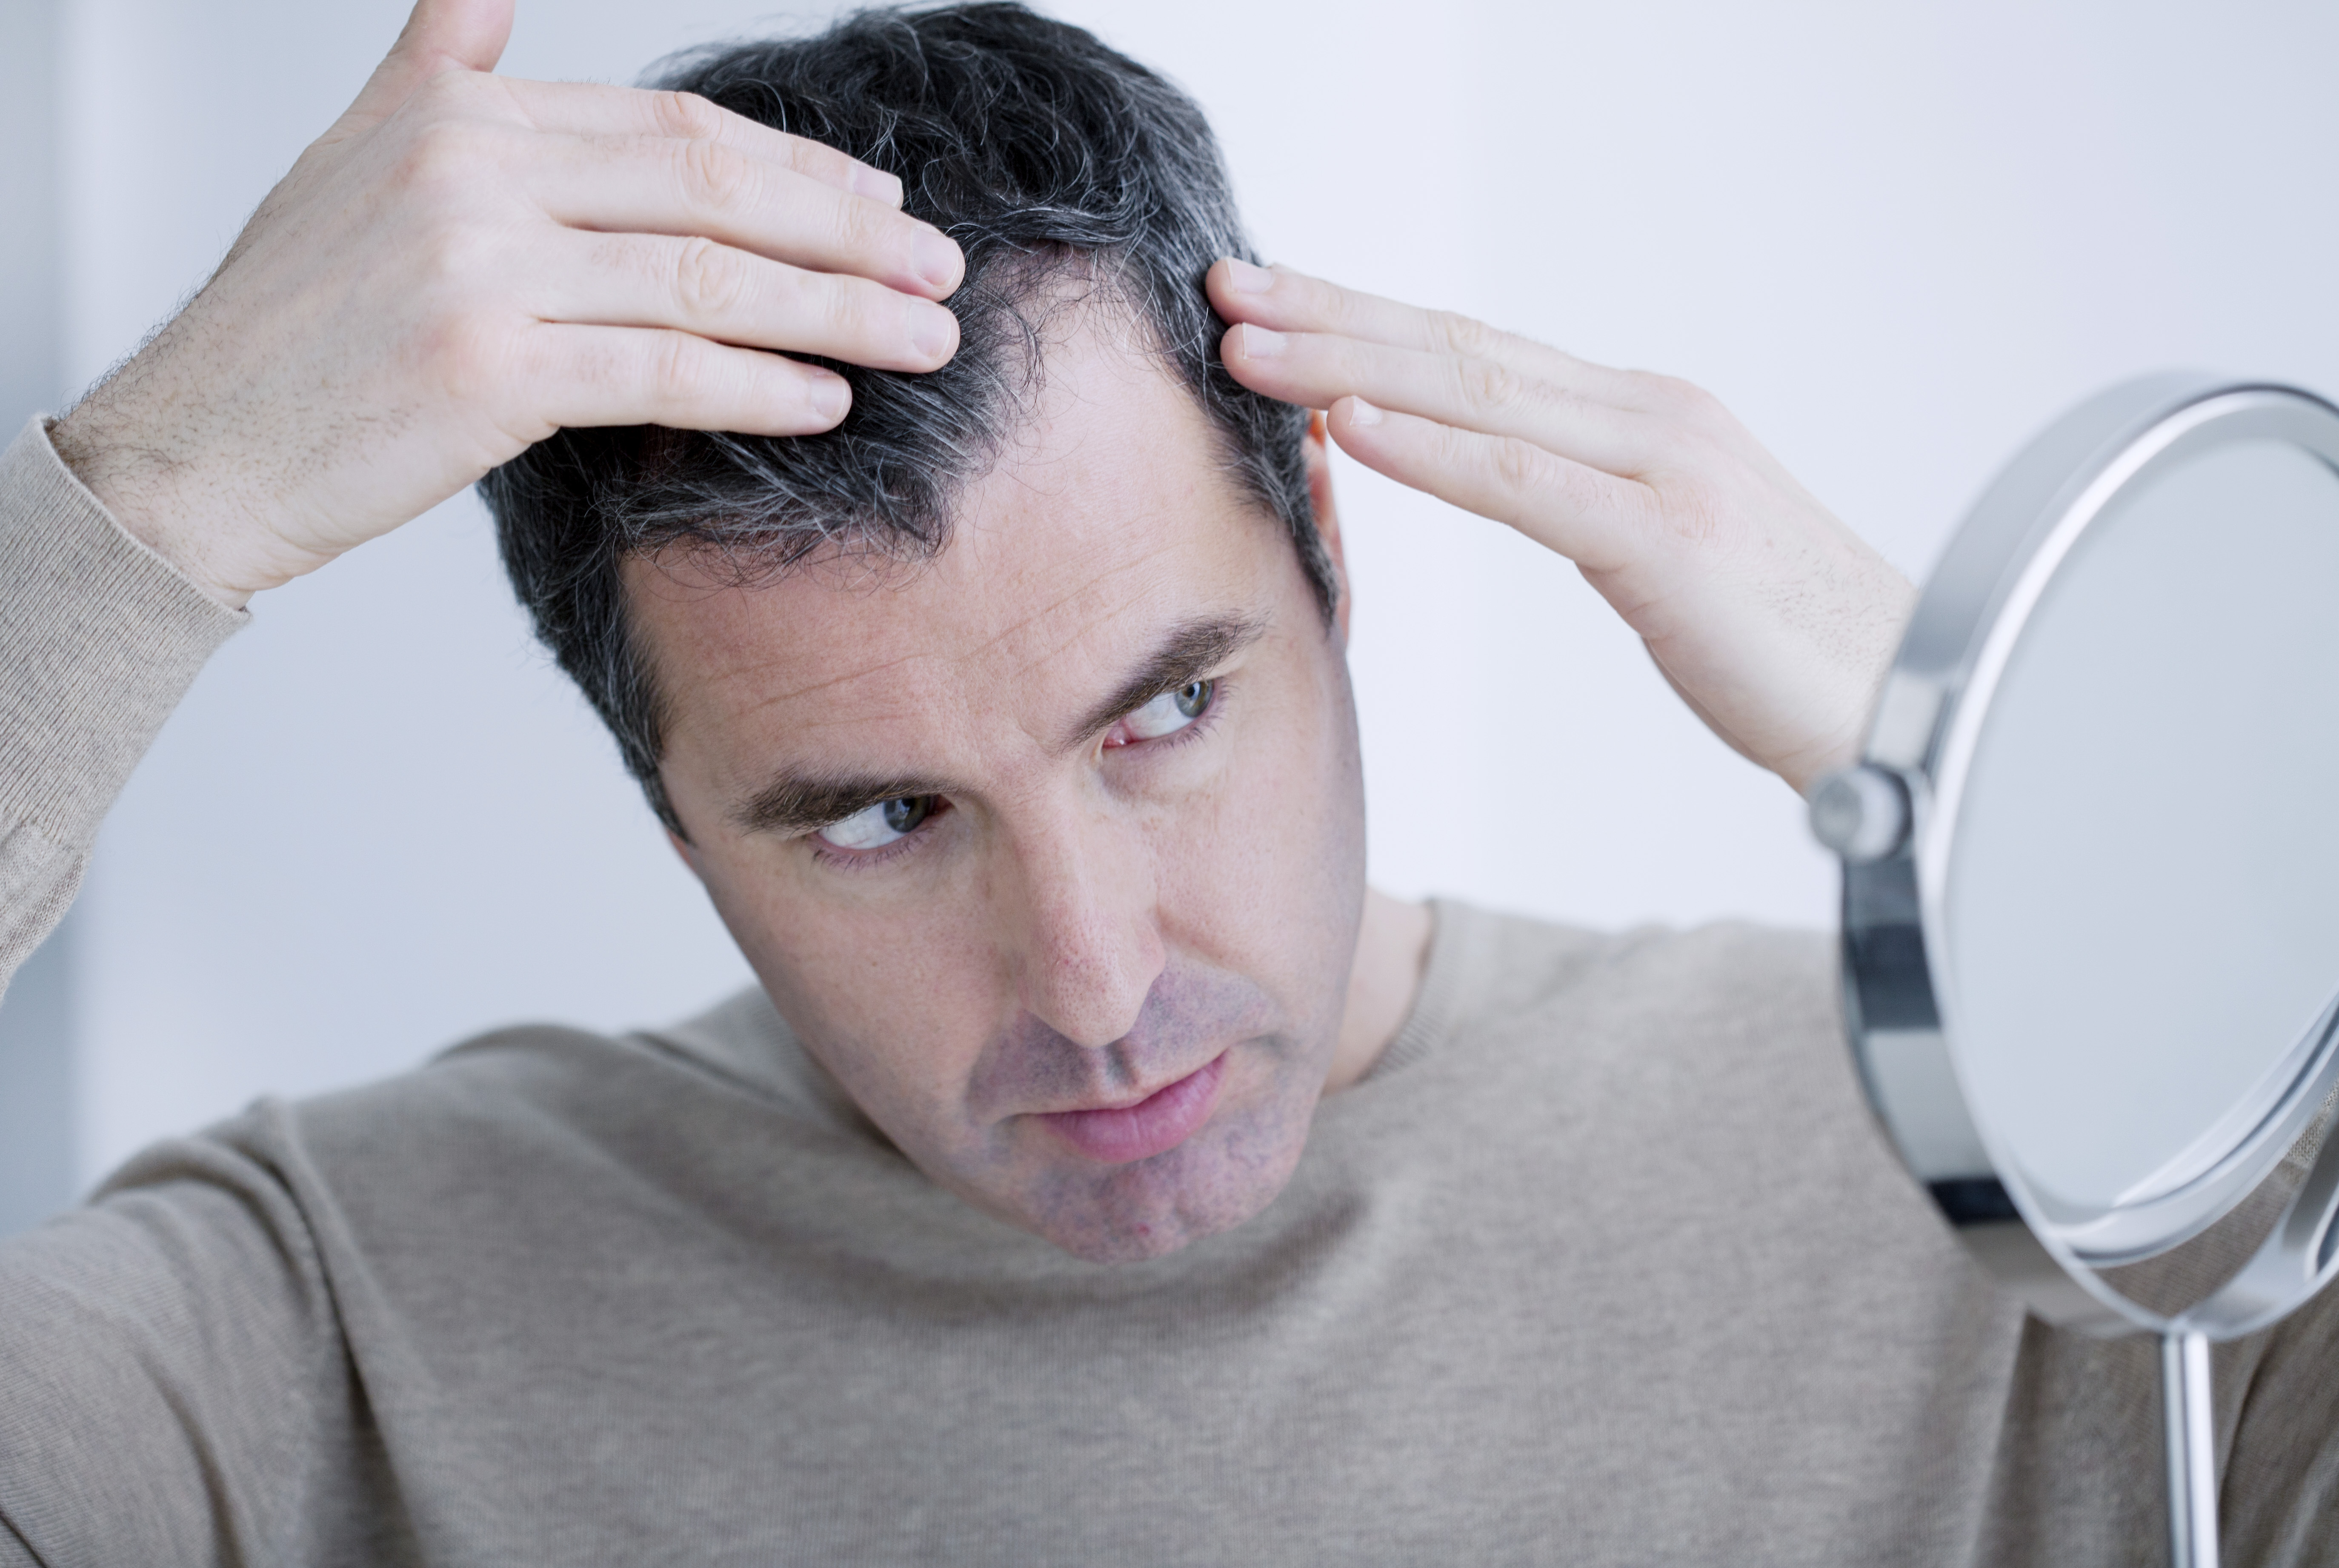 hair-loss-prp-therapy